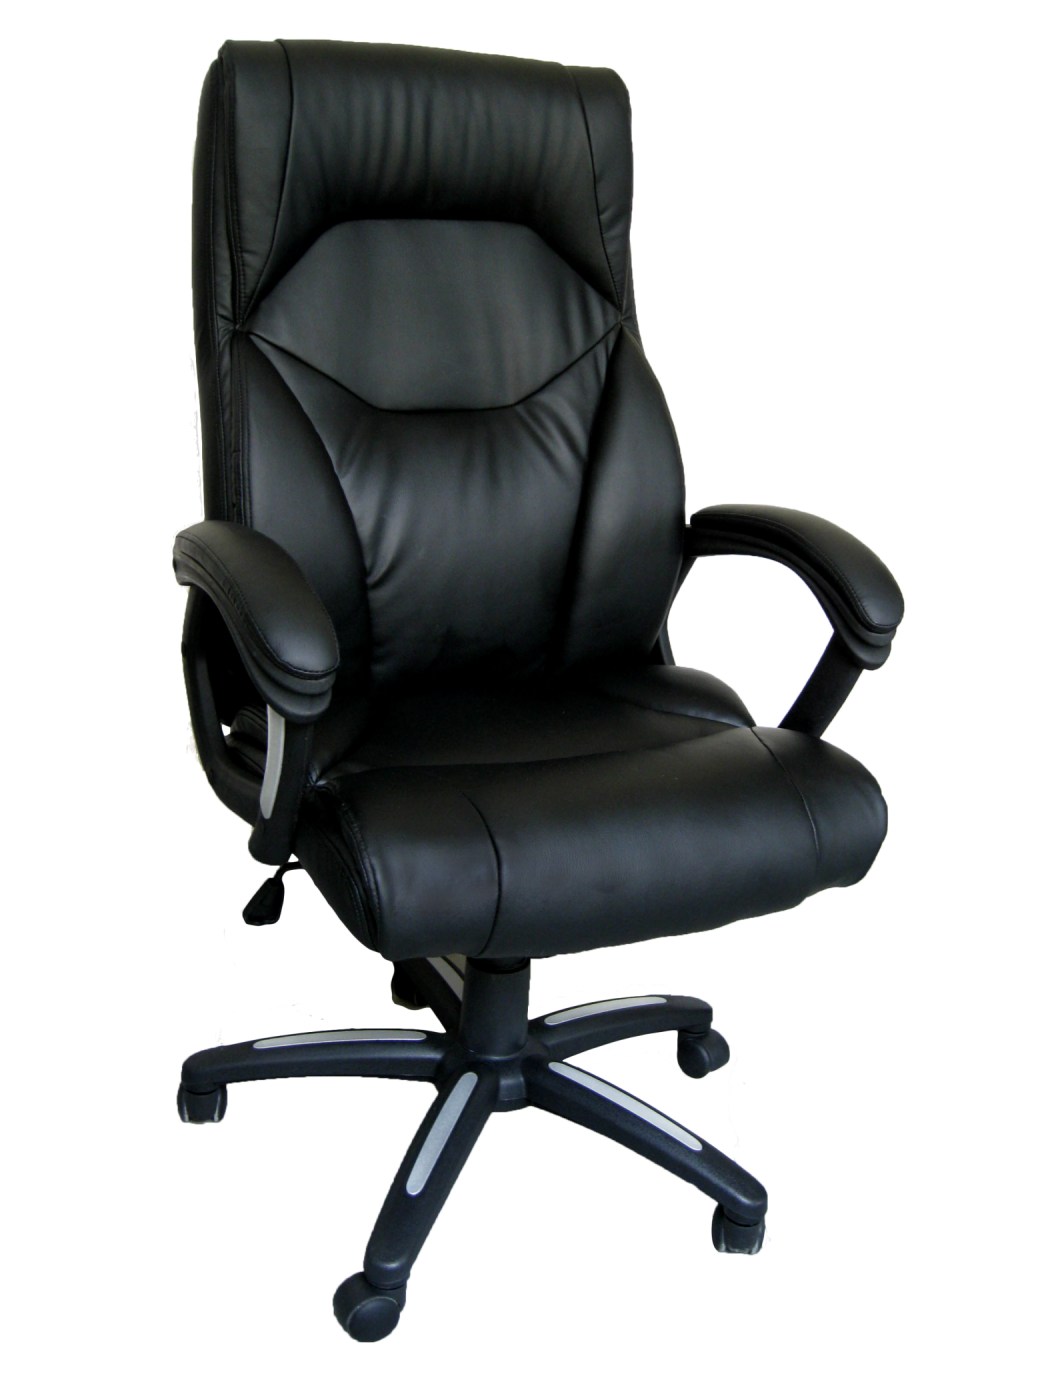 Office Chairs Wellington Bcpt102bk 121 Office Furniture